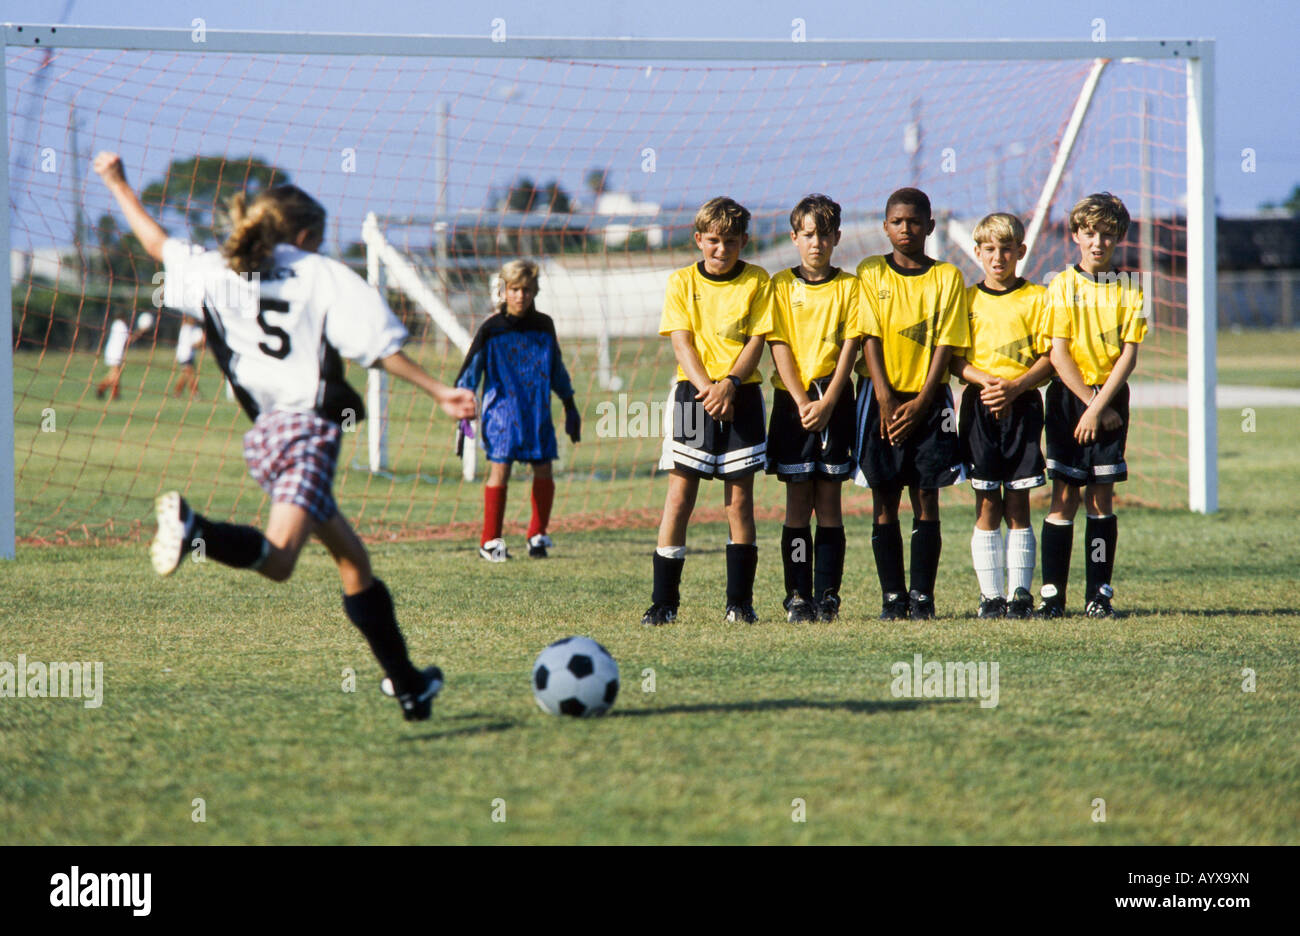 Kids soccer team, girls and boys together, with coach teaching skills, teamwork, teamspirit, Melbourne, Florida - Stock Image